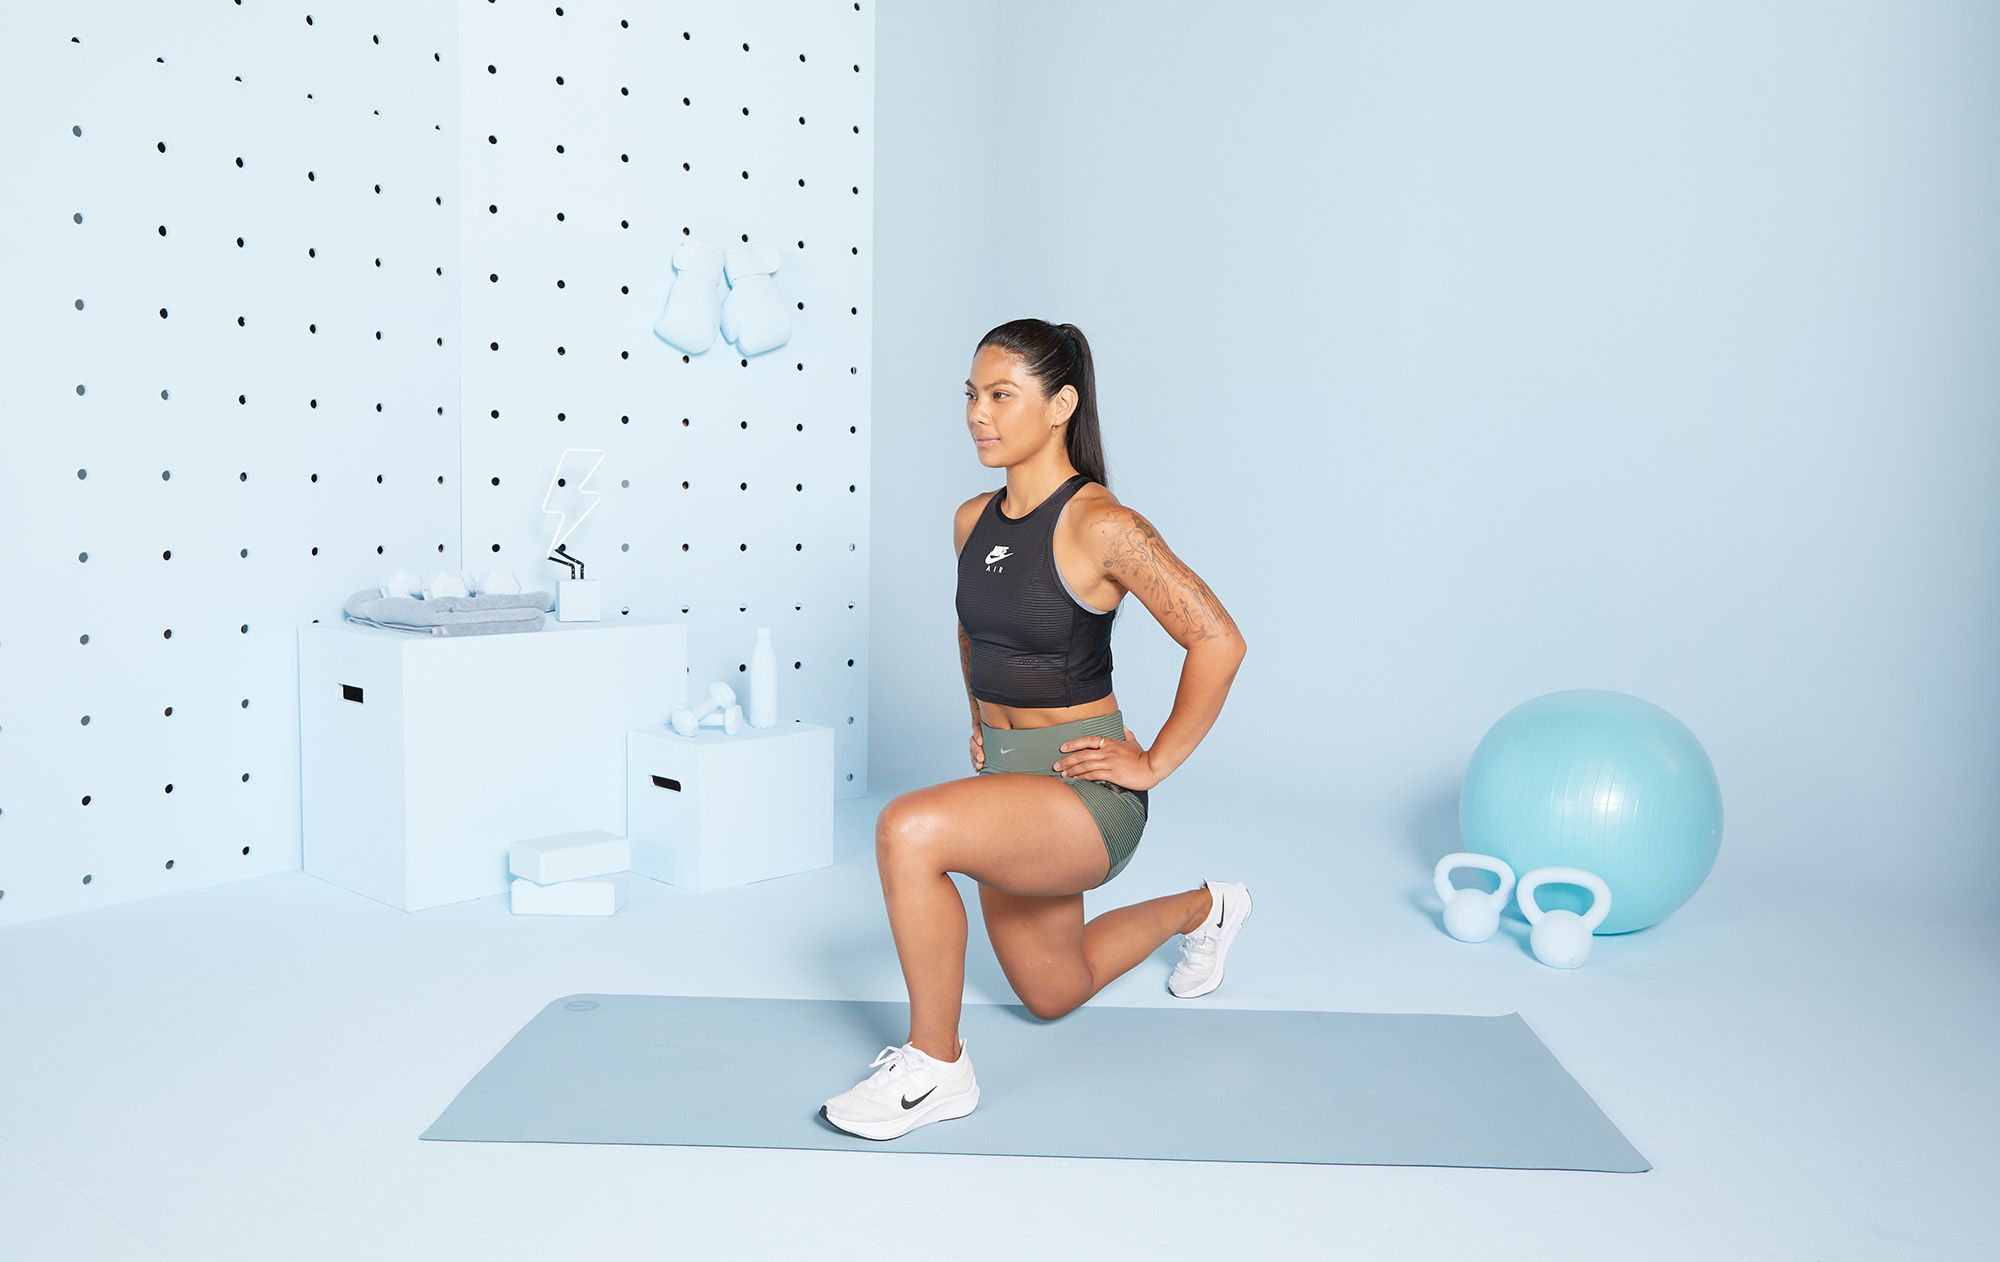 A 15 Minute Workout To Sculpt Your Legs And Abs